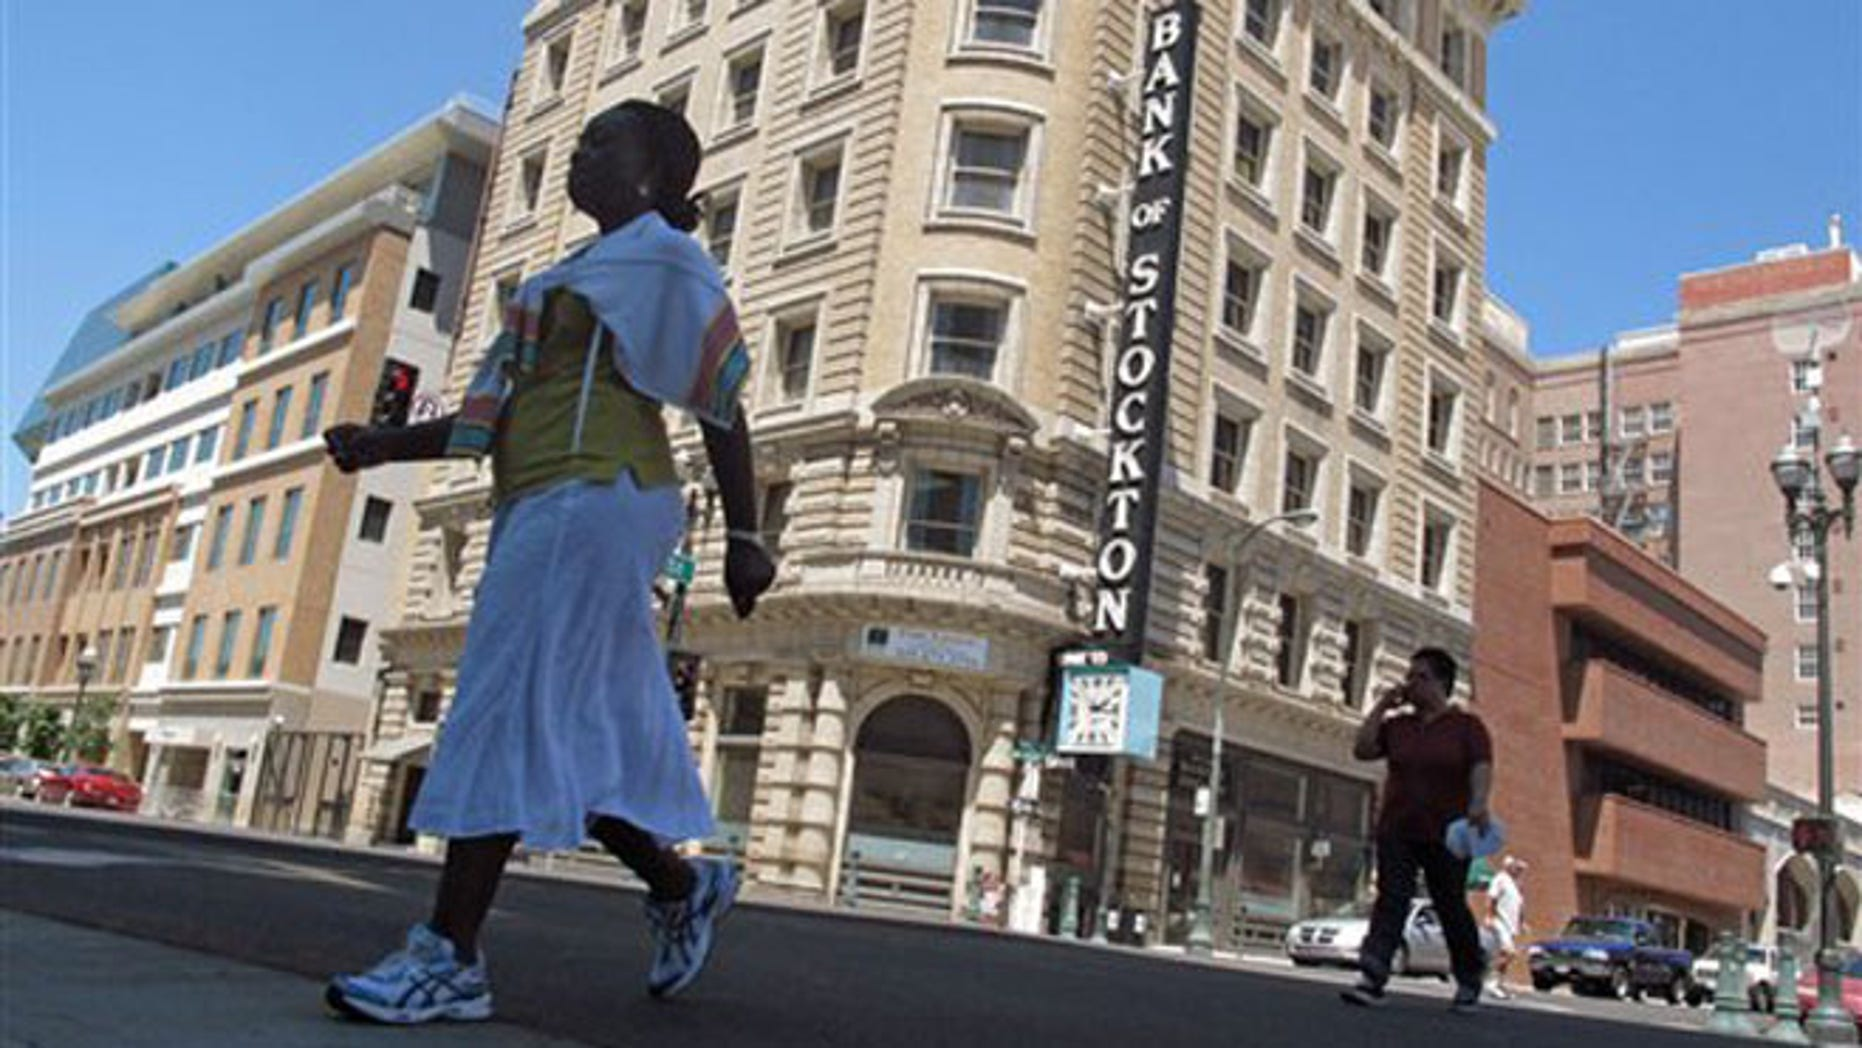 June 27, 2012: Pedestrians cross a street near the Bank of Stockton in Stockton, Calif.